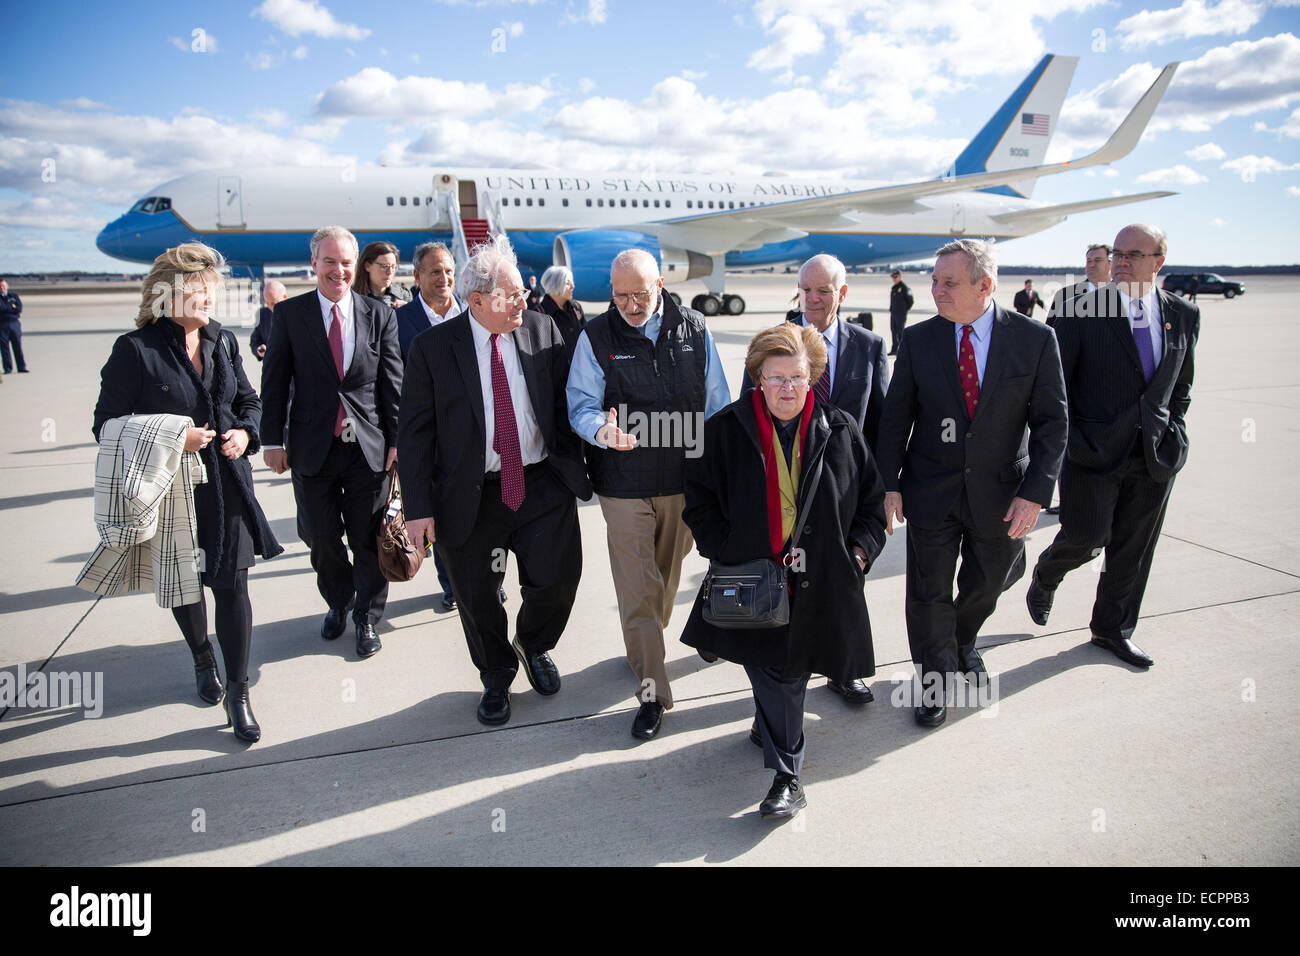 Maryland, USA. 17th Dec, 2014. Photo provided by the White House shows U.S. contractor Alan Gross (5th R) arriving - Stock Image